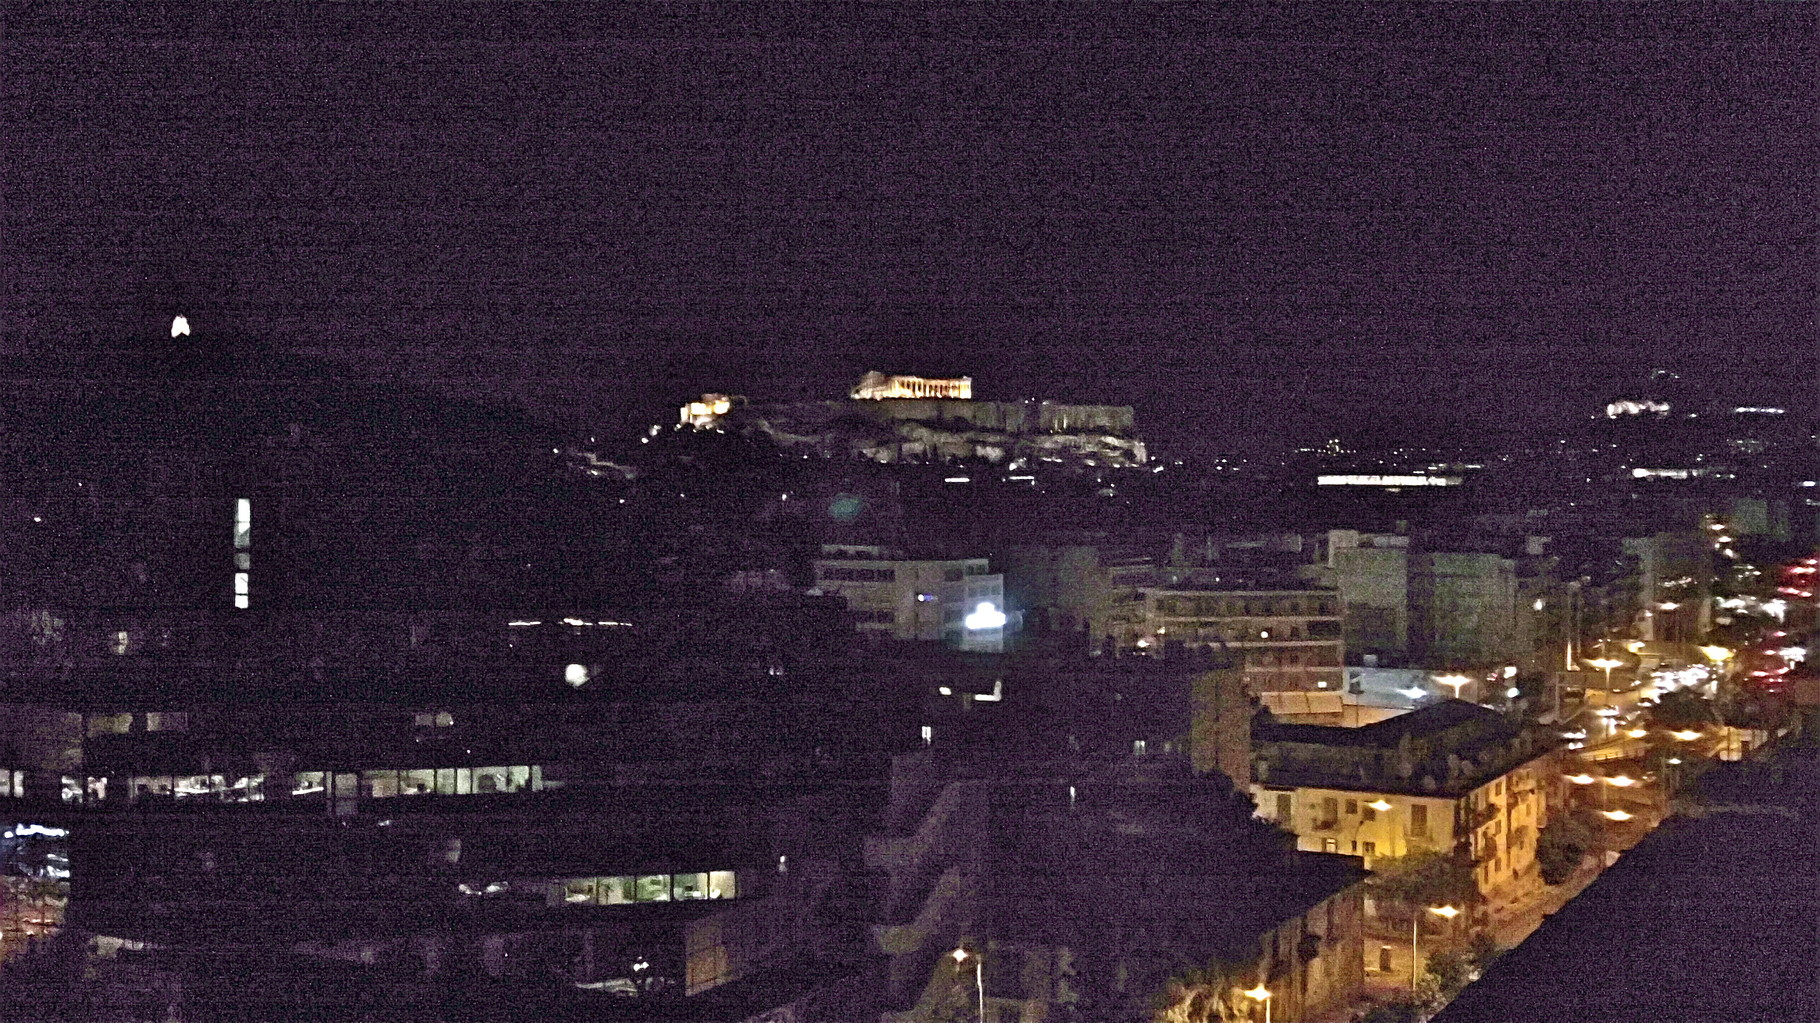 view of the Acropolis at night from our hotel, Athens